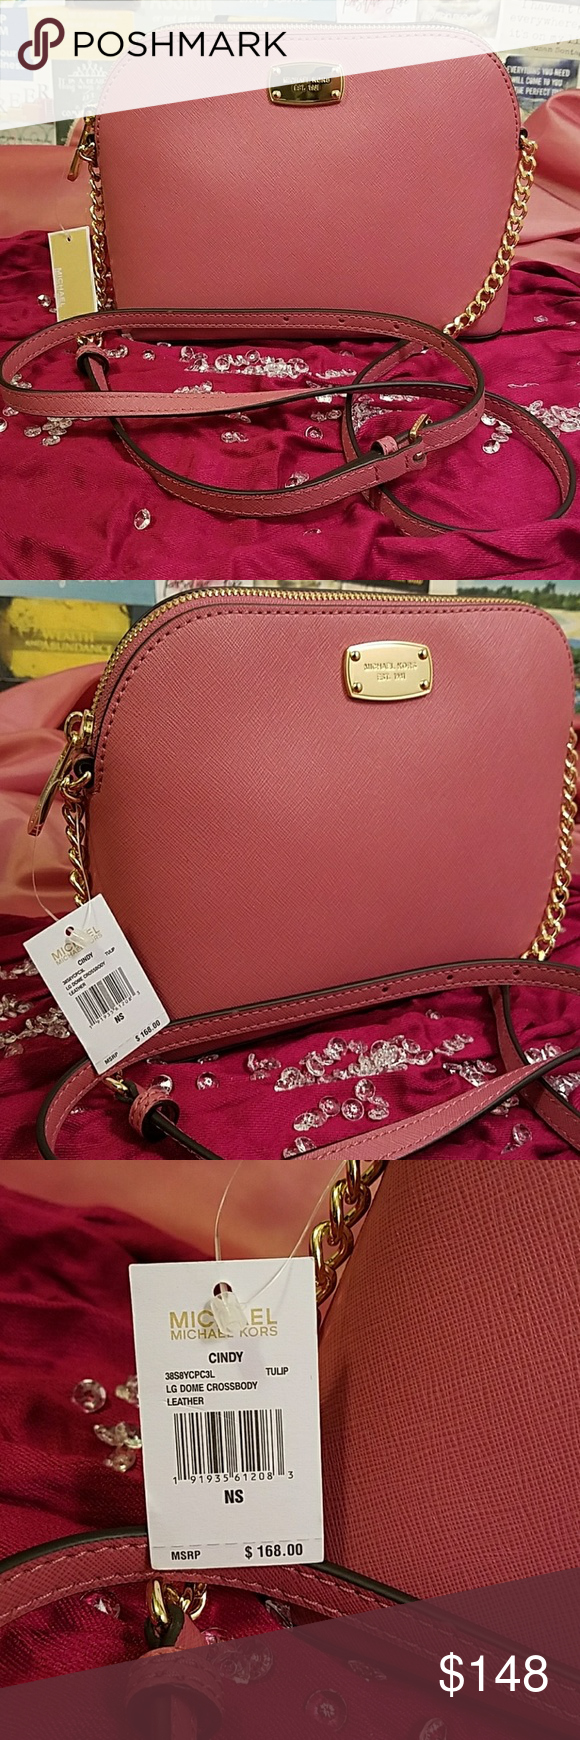 8ee6fbe92674 Michael Kors LG Dome Crossbody Leather Purse! The color is Tulp. Which is a  beautiful blush color pink. It has gold chain trimmings on each ...